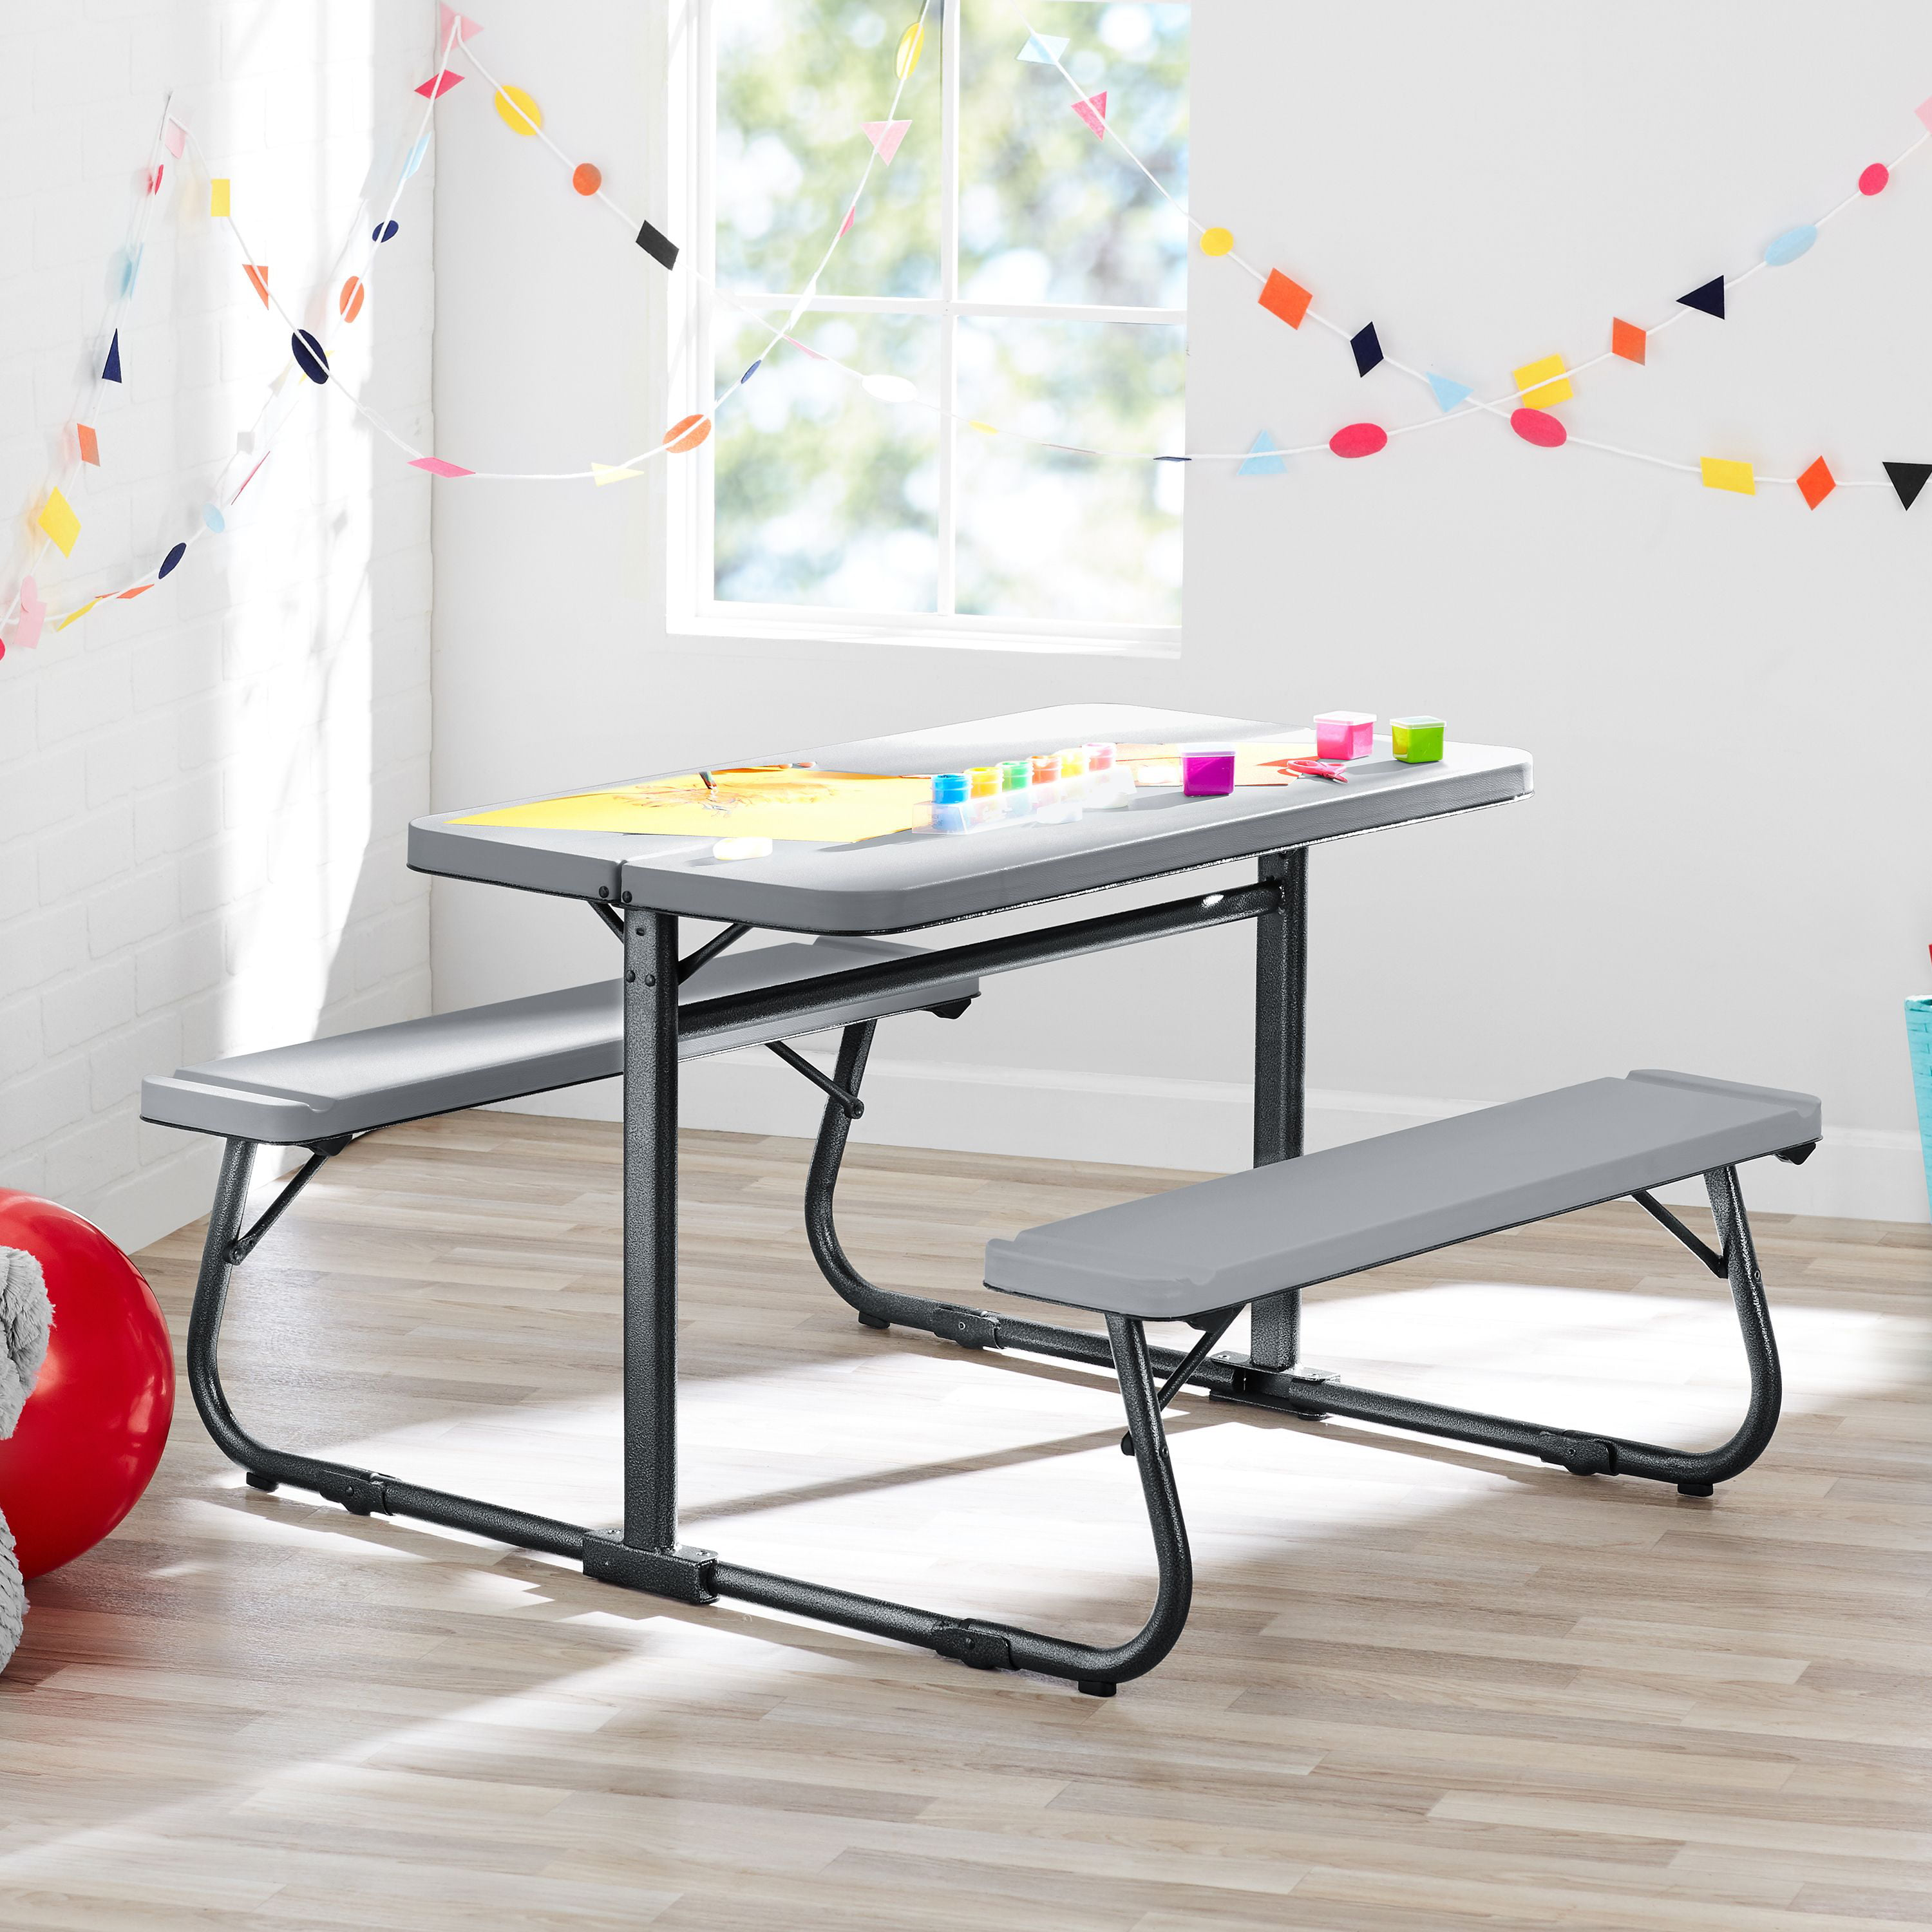 Prime Your Zone Folding Kids Activity Table With Two Benches Ocoug Best Dining Table And Chair Ideas Images Ocougorg